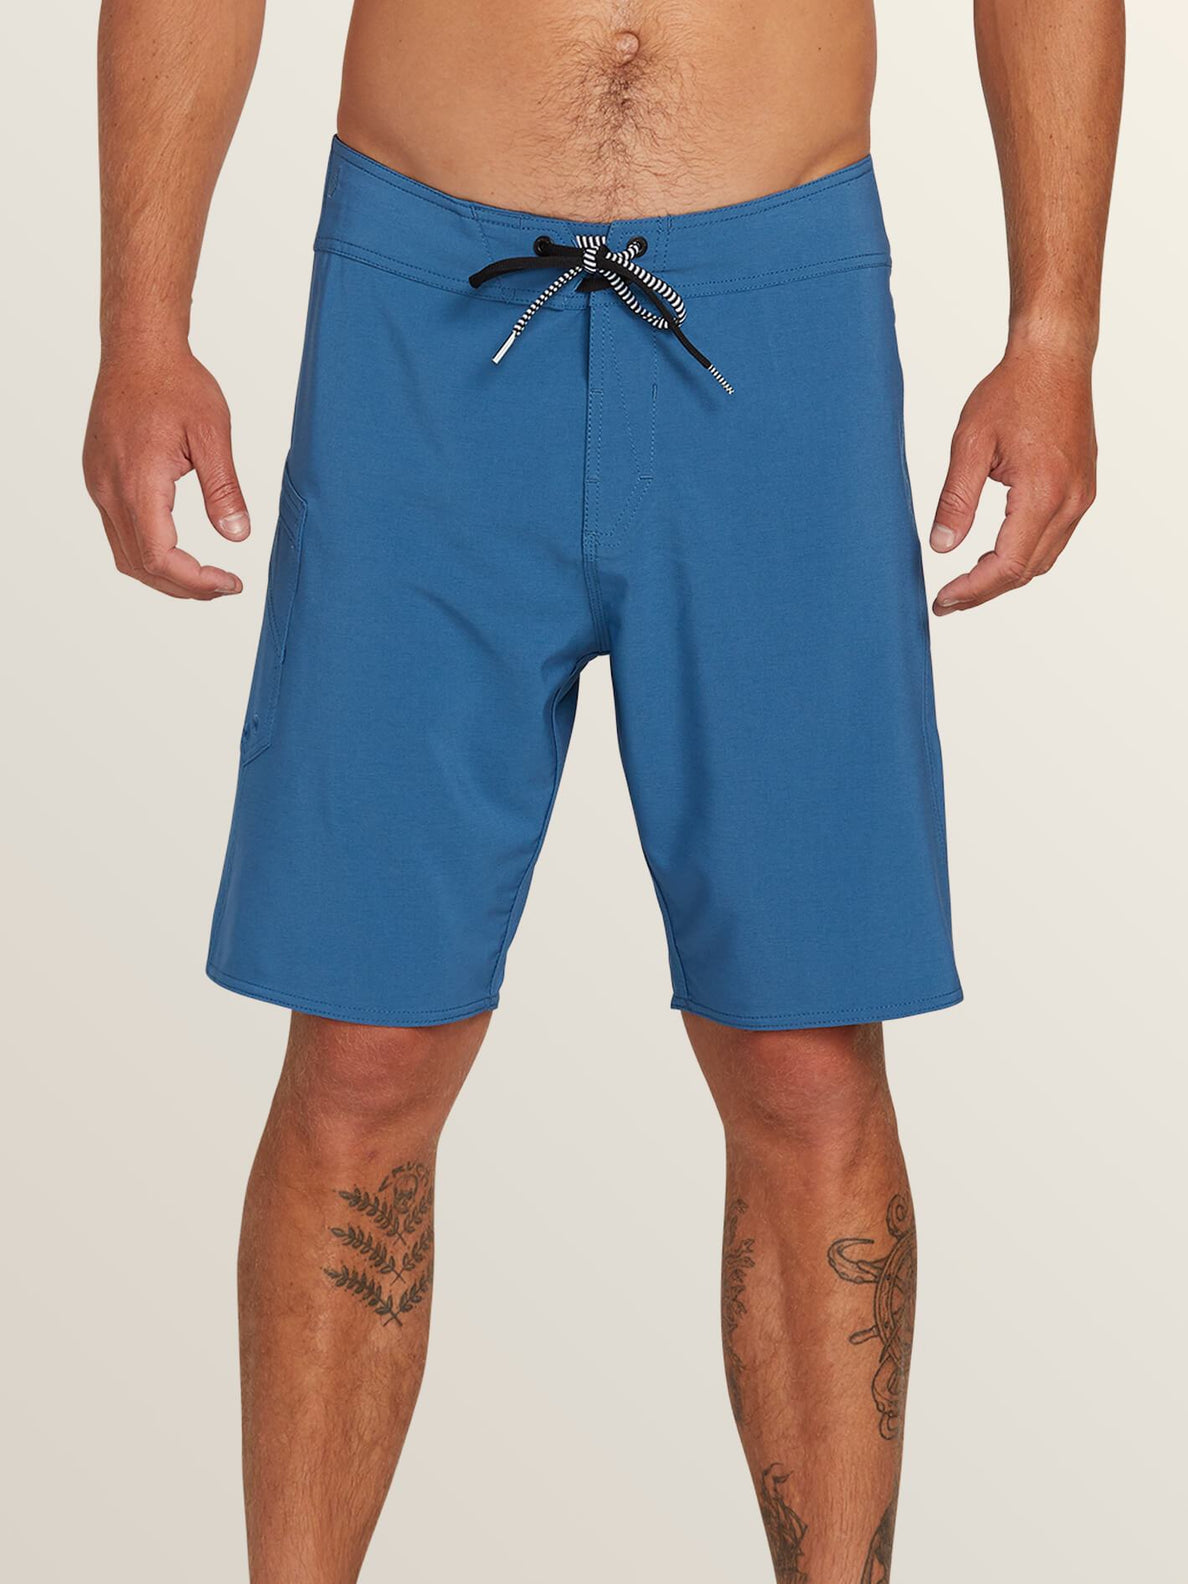 Lido Solid Mod Boardshorts In Snow Vintage Navy, Front View